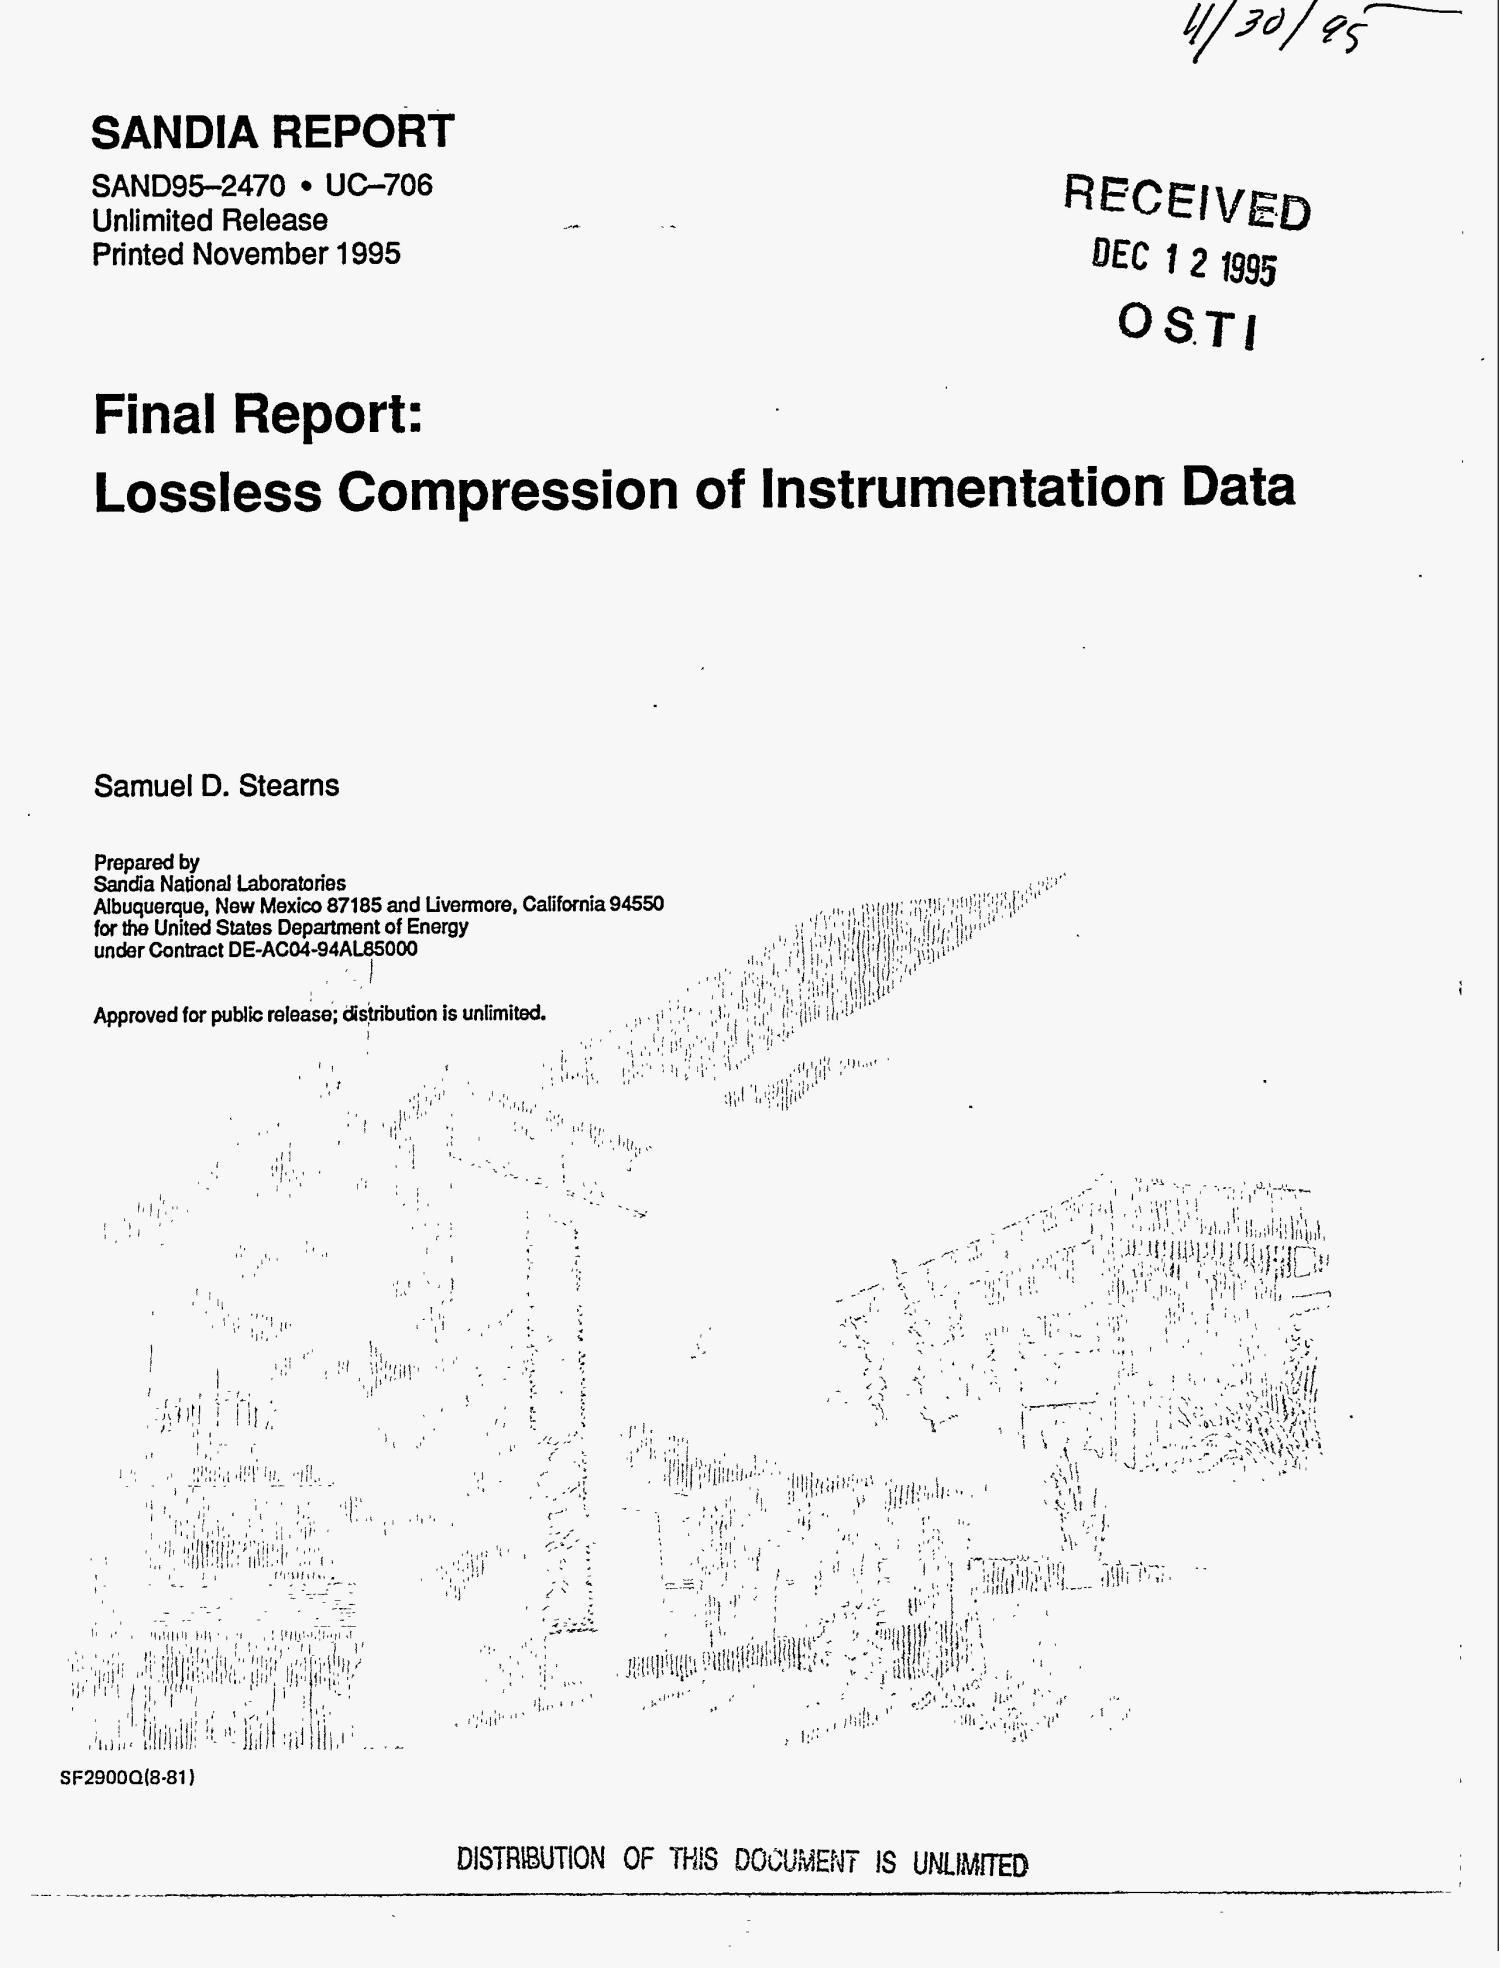 Lossless compression of instrumentation data. Final report                                                                                                      [Sequence #]: 1 of 30